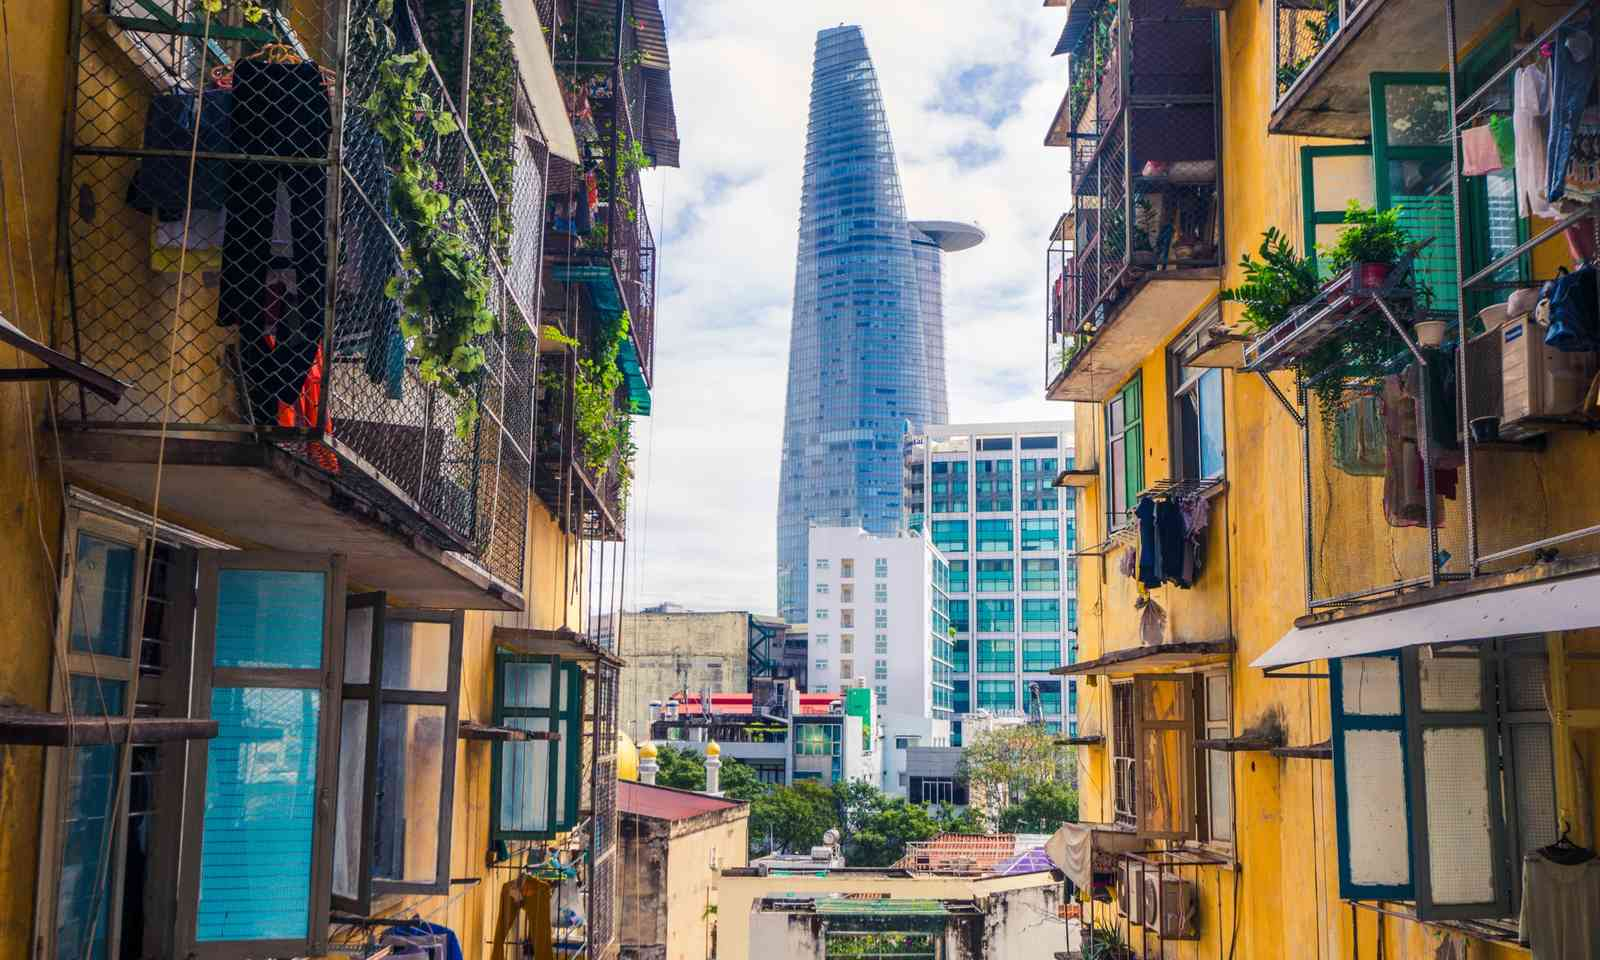 The Bitexco Financial Tower viewed from District 1 (Dreamstime)